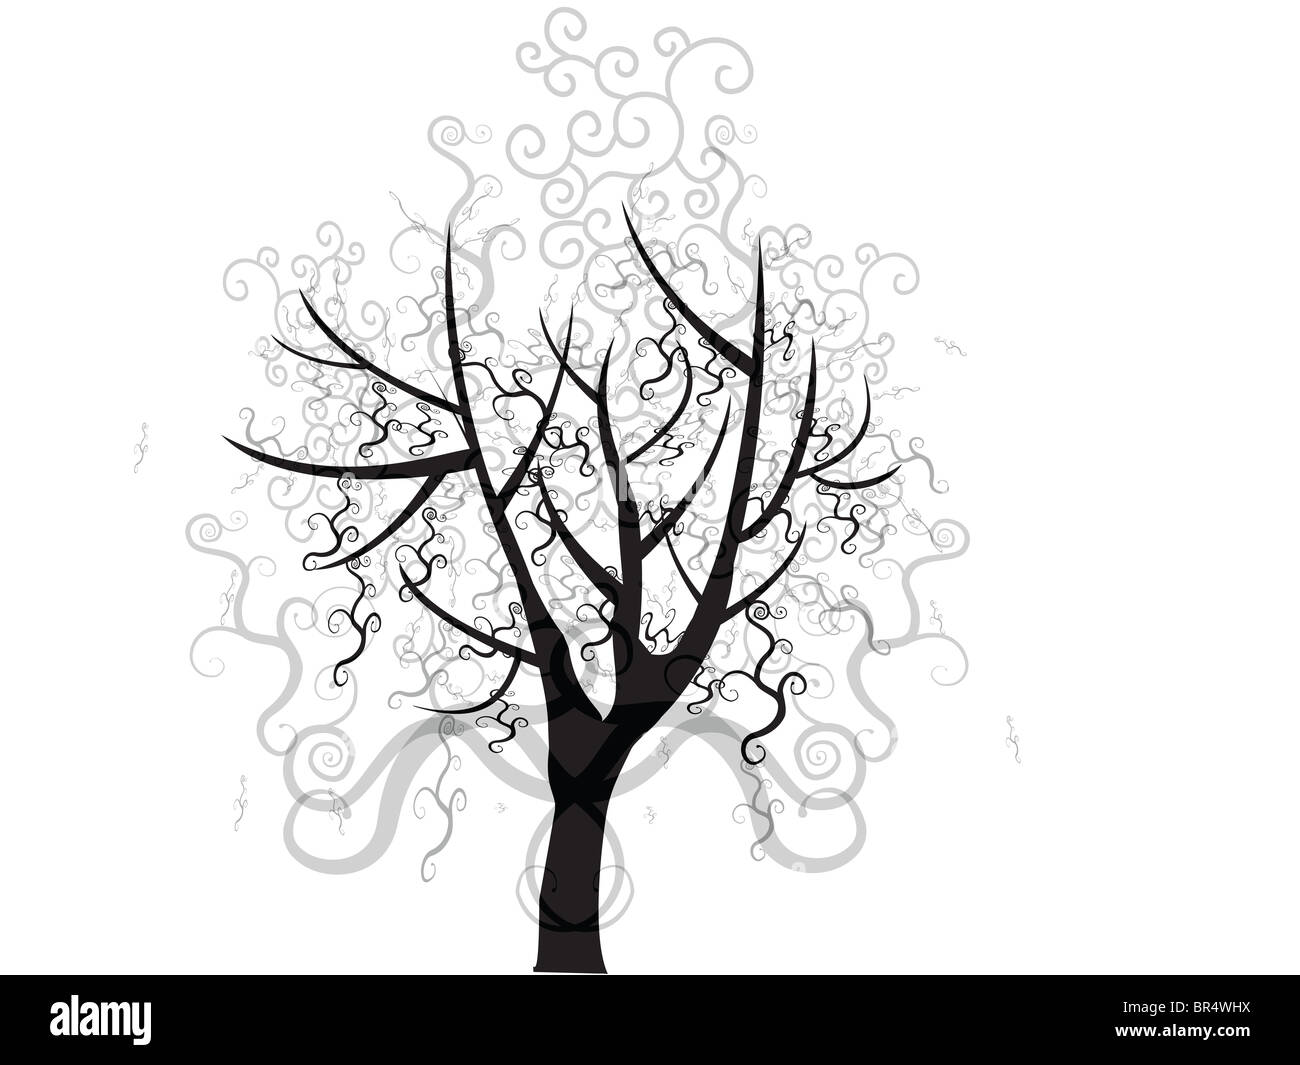 A tree with layers of swirling lines making up the trees foliage Stock Photo